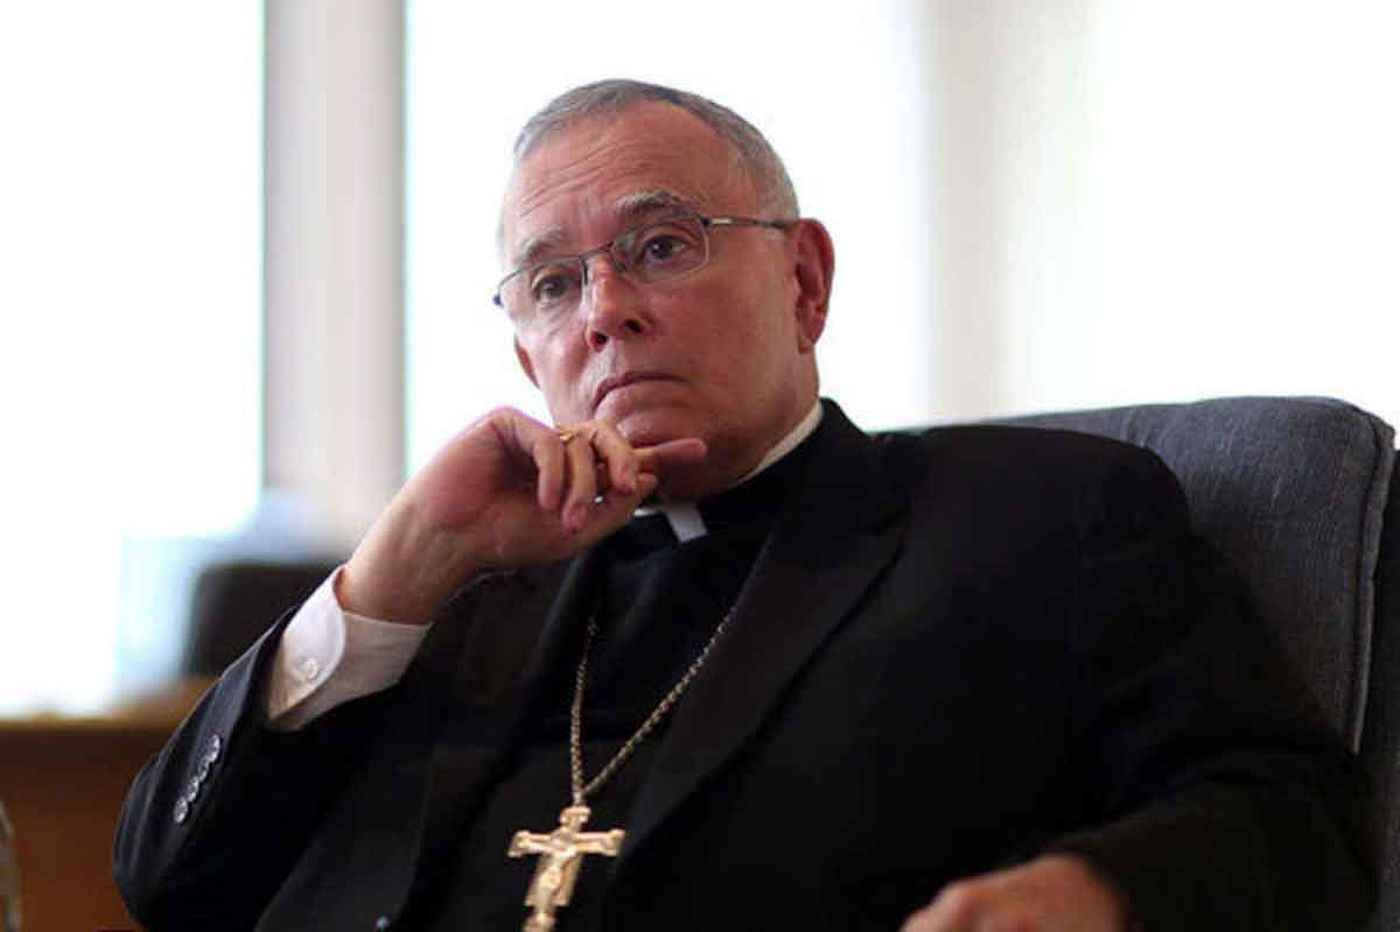 Archbishop Charles Chaput: Media coverage of church sex abuse scandal is unbalanced